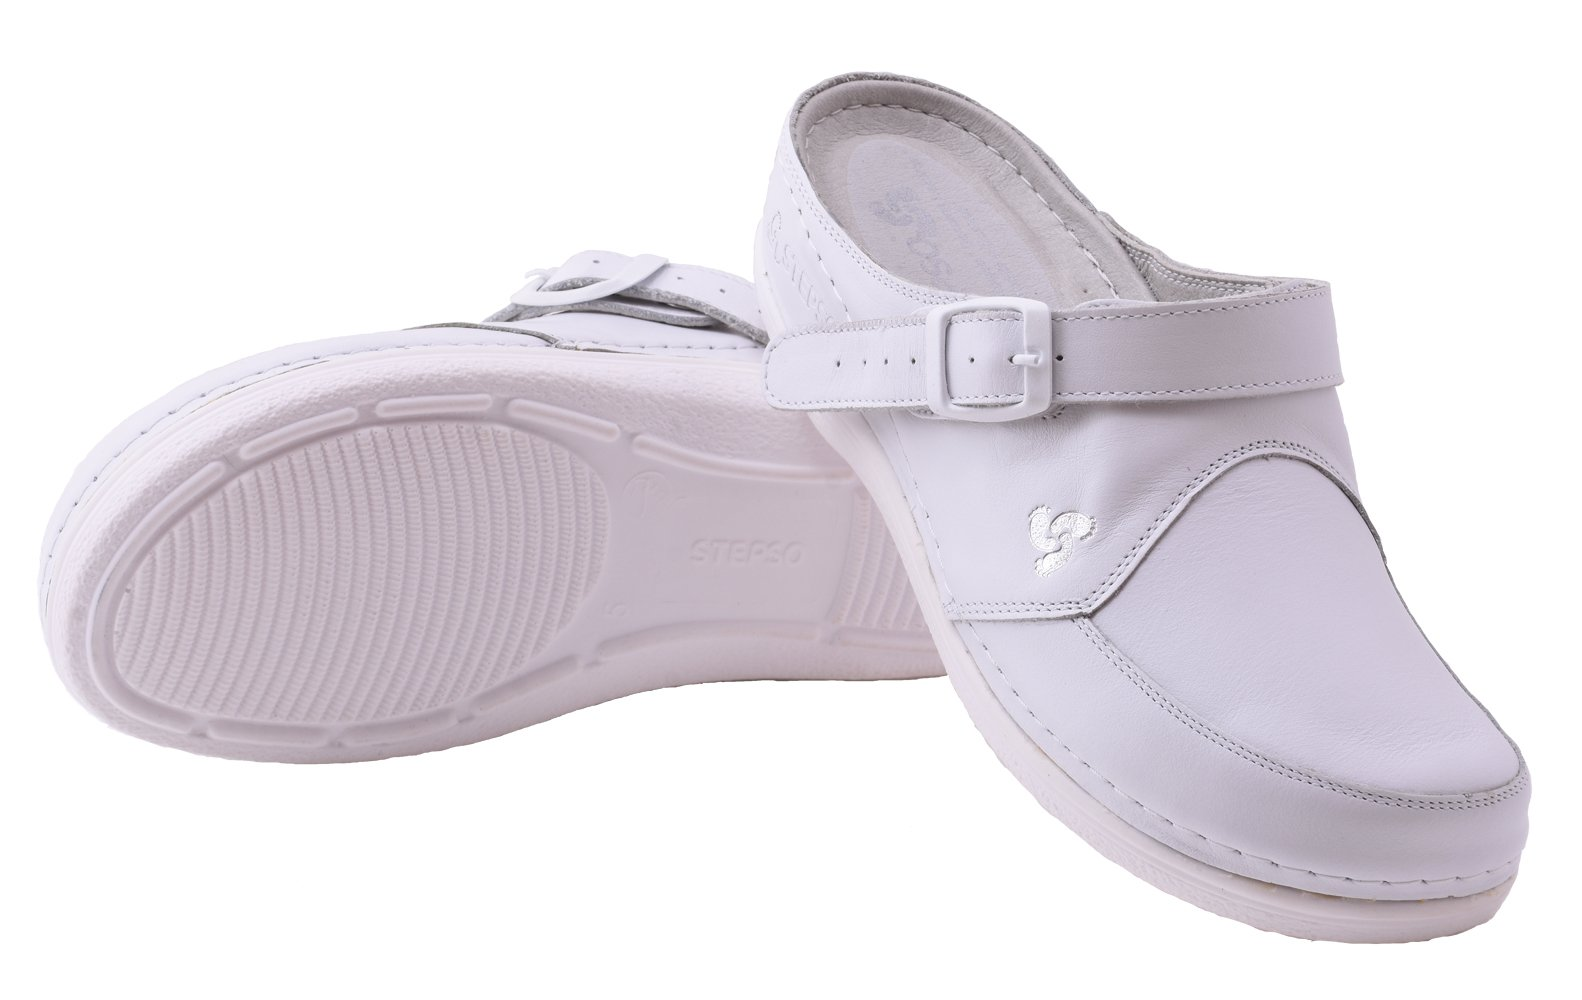 STEPSO Handmade Leather Clogs with Buckle Heel Straps for Women (9),White